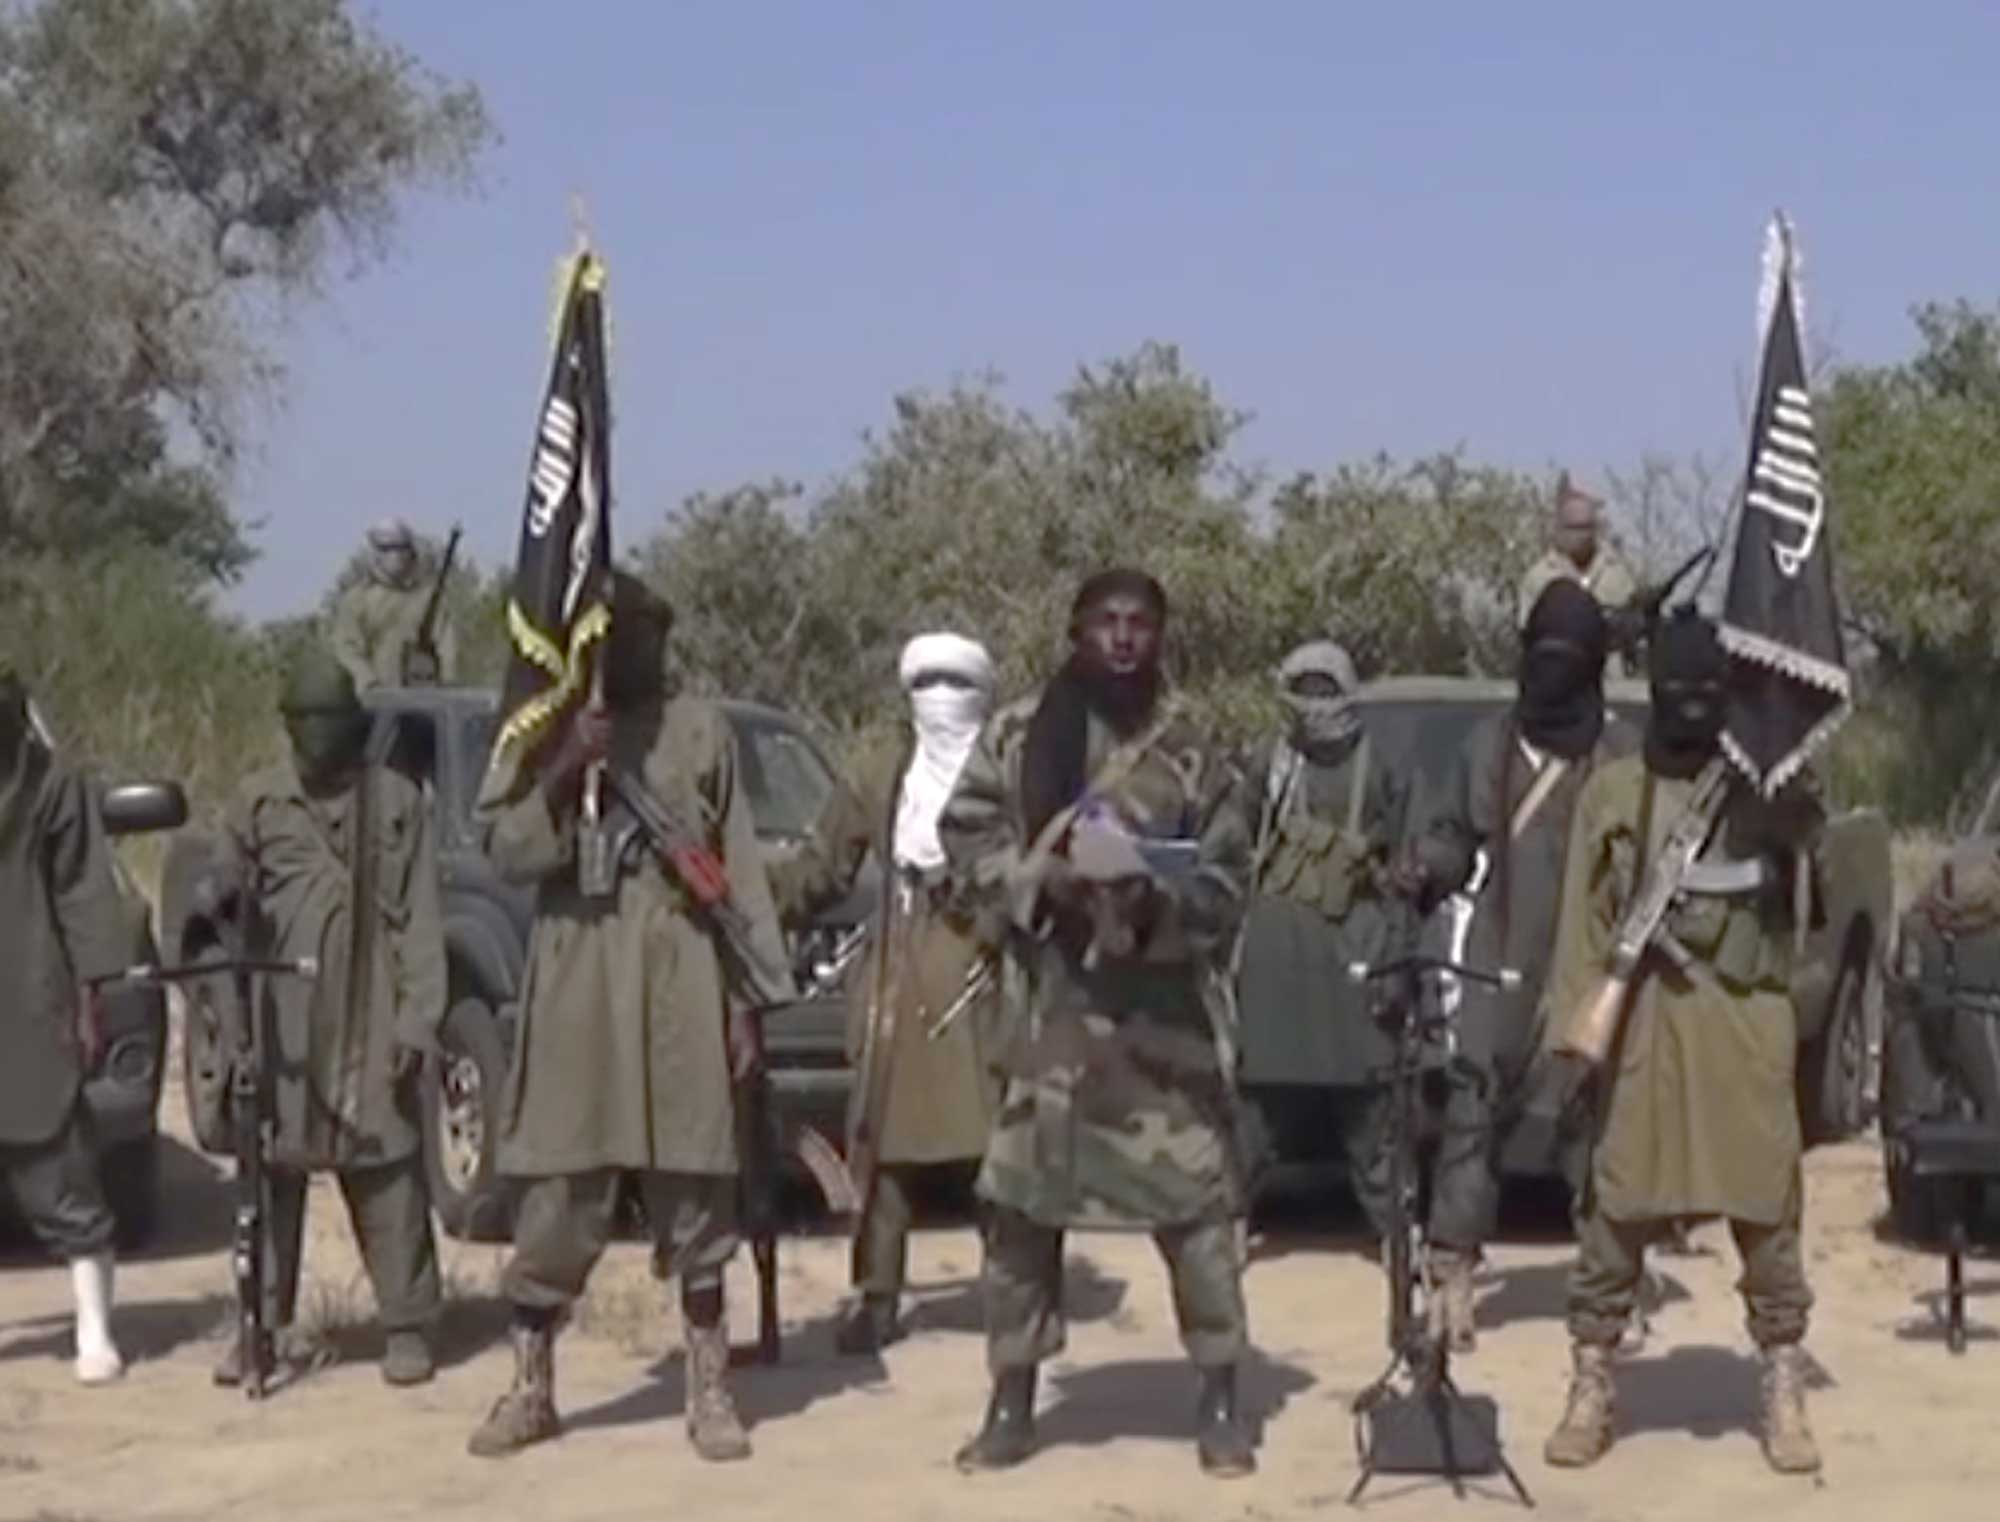 The leader of Nigeria's Islamic extremist group Boko Haram on Oct. 31, 2014.